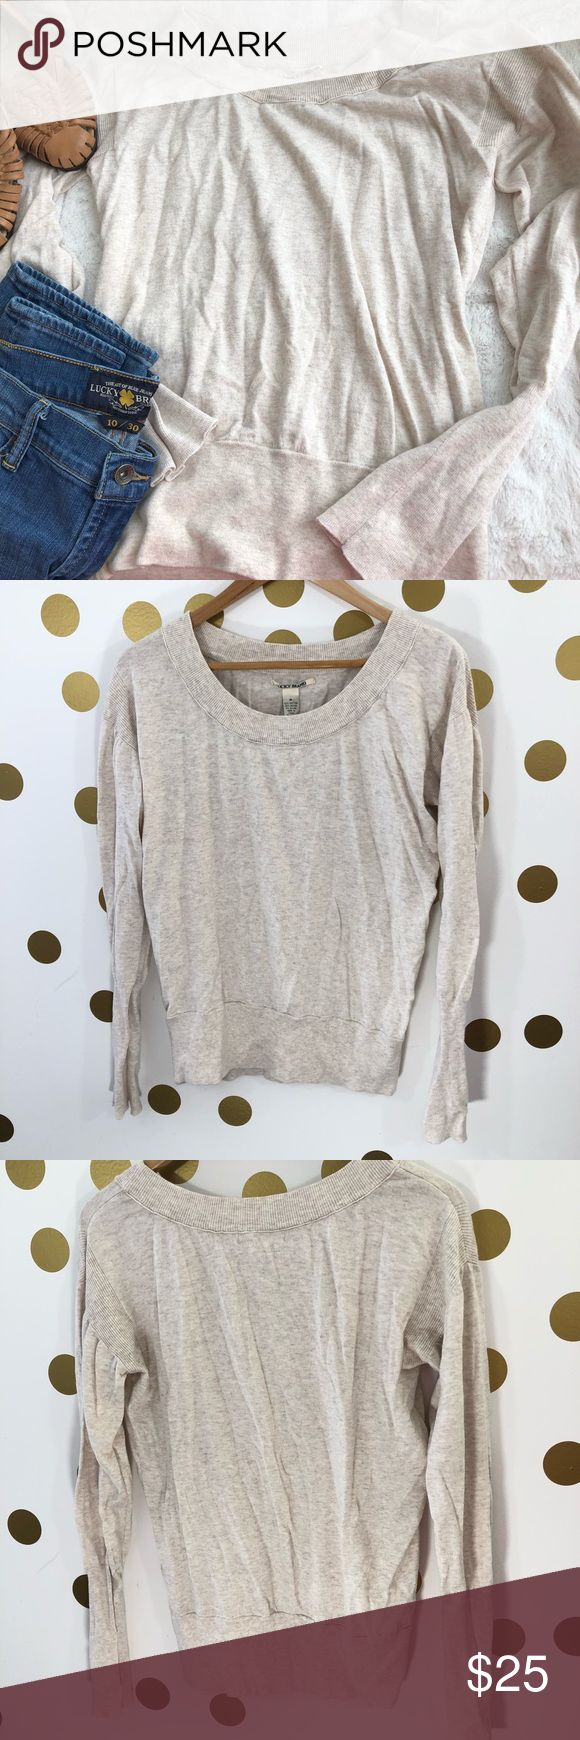 Lucky Brand Cream Oatmeal Cotton Blend Sweater Lucky Brand Cream Oatmeal Cotton Blend Sweater  Super soft, looks like new- this Lucky Brand sweater is perfect for heading into spring, it's a light knit in a light, warm tone that will not look out of place going into the chilly spring weather.  Unique rib detail at shoulders gives sweater character. Lucky Brand Sweaters Crew & Scoop Necks